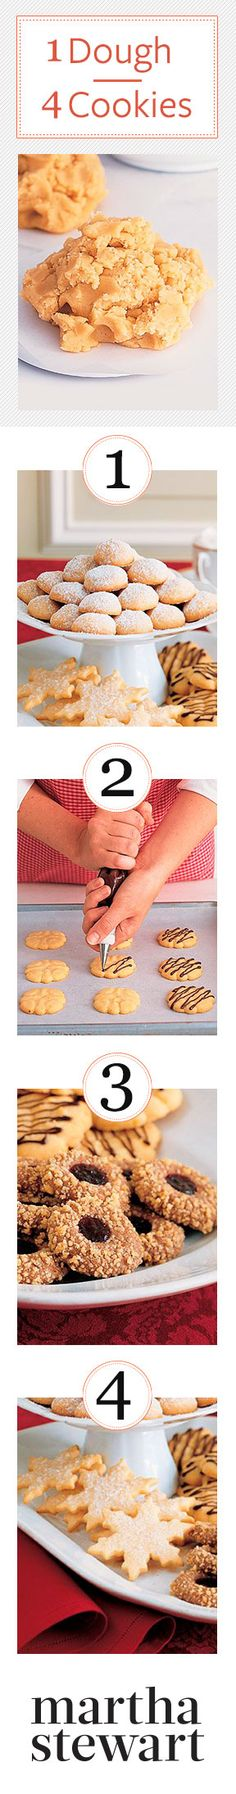 Holiday Cookies: 1 Dough, 4 Cookies